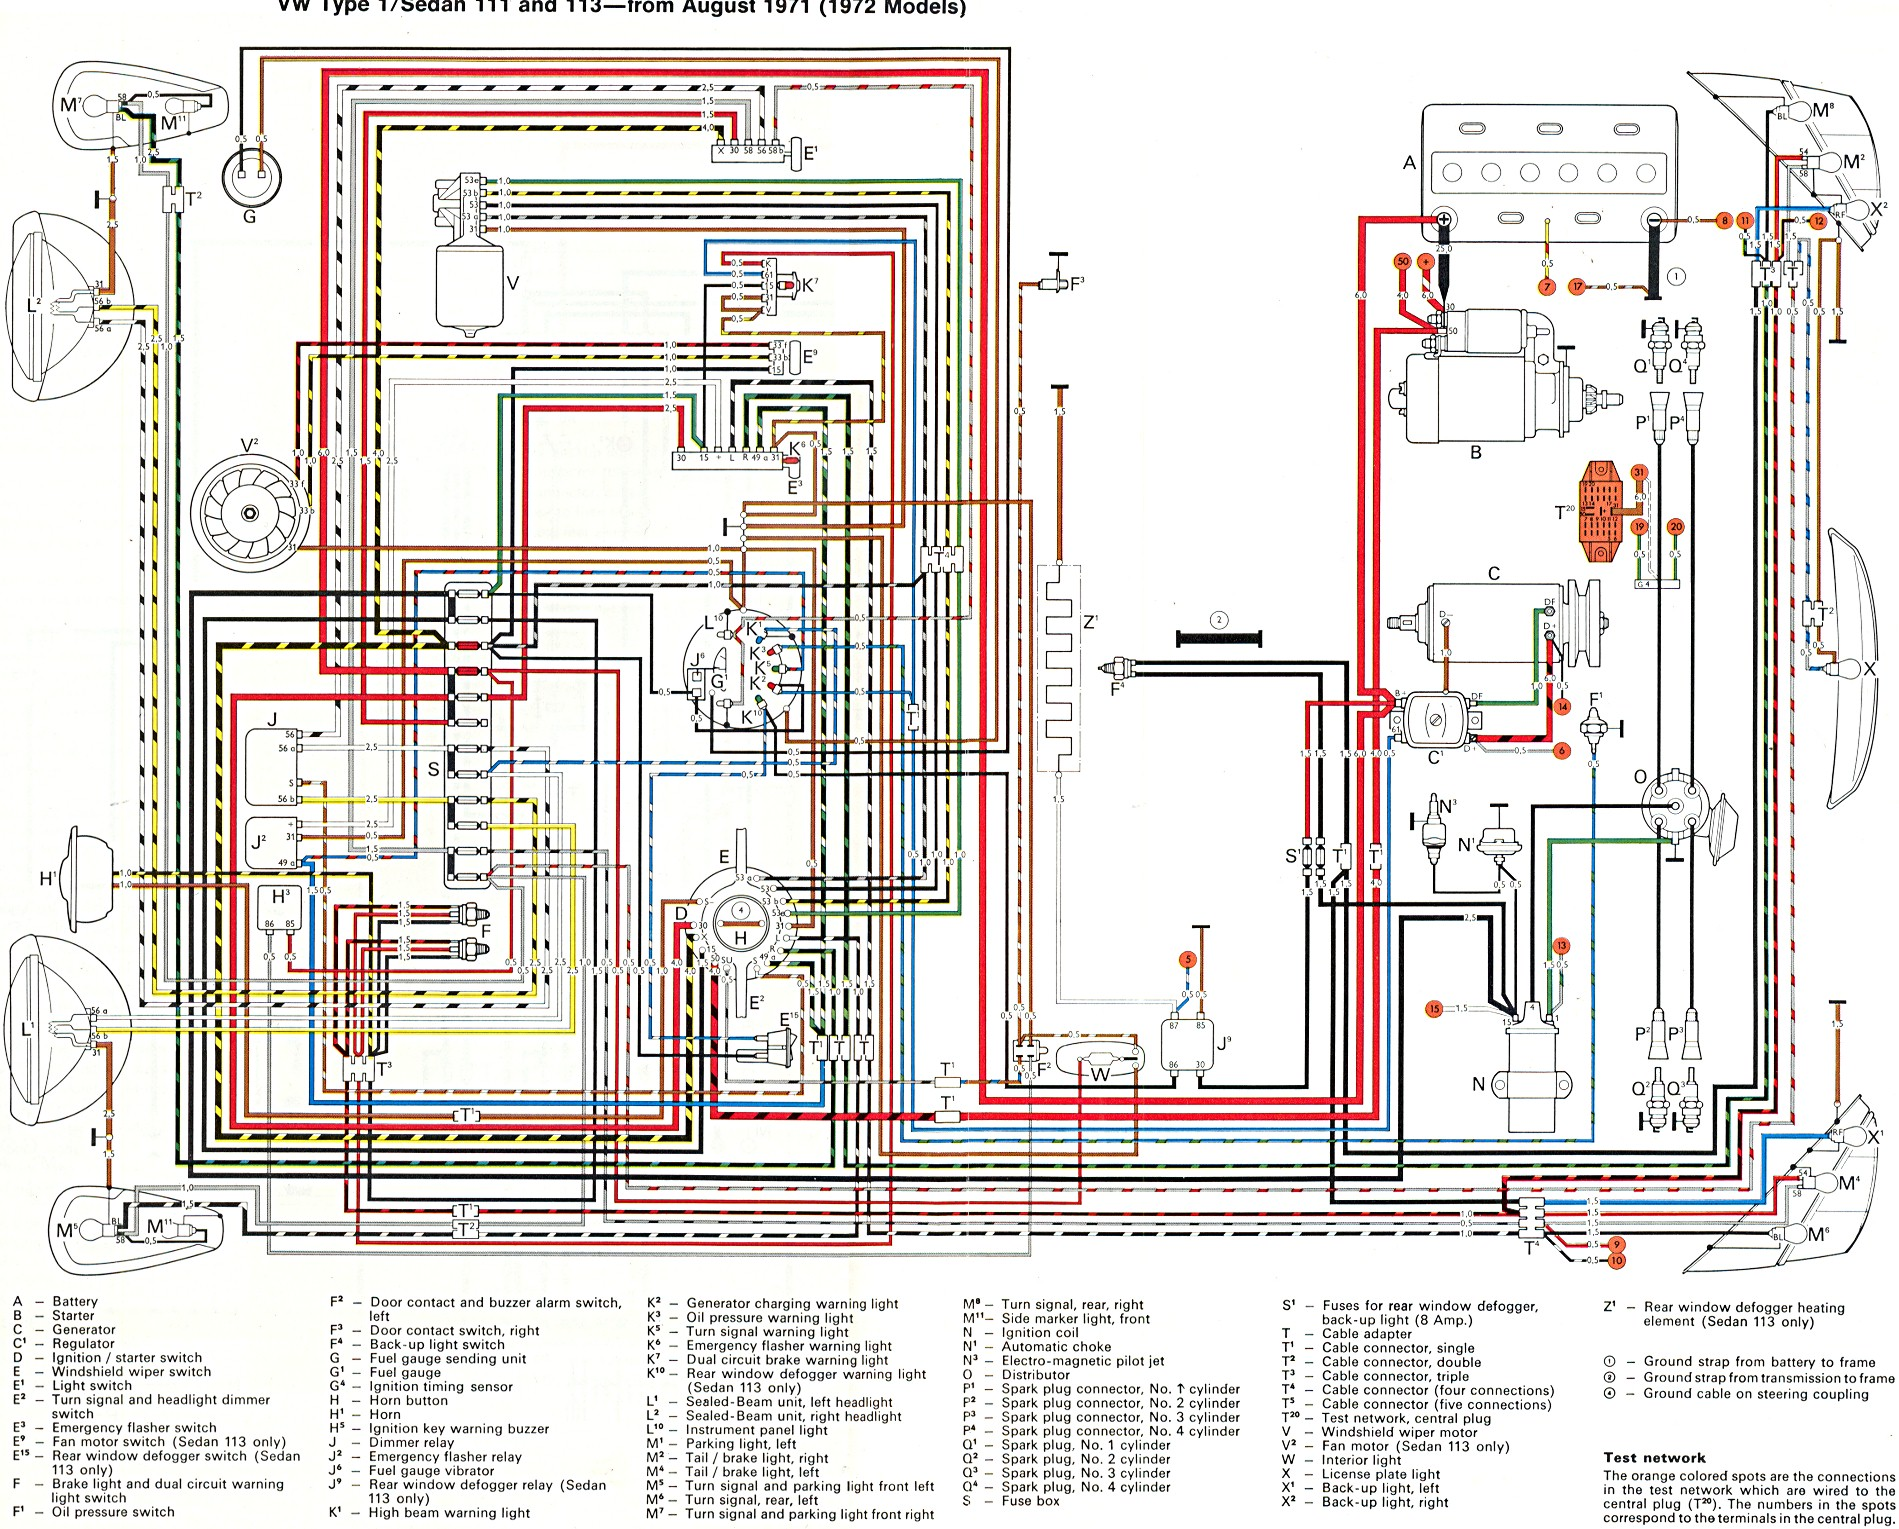 Additional Wiring